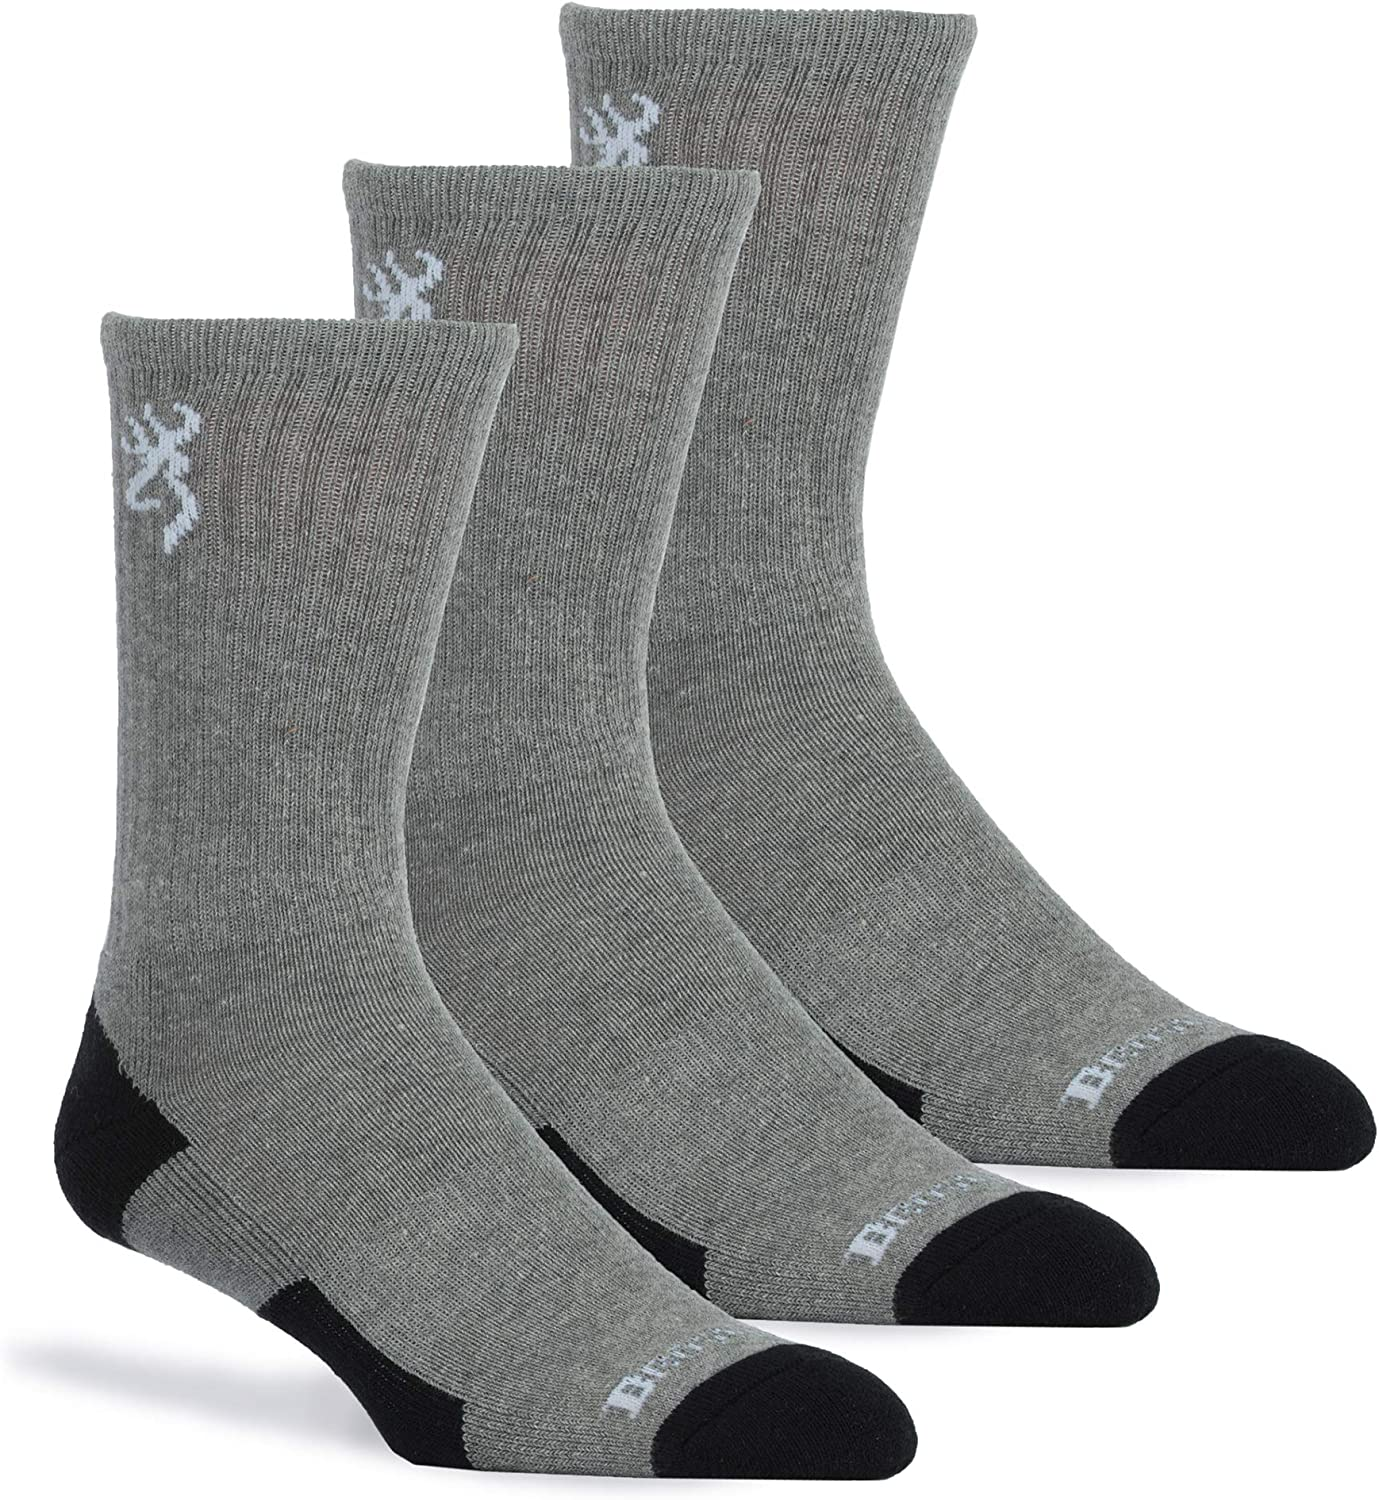 Browning Men's 3-Pack Everyday Crew, Heather Gray/Heather Gray/Heather Gray, Large